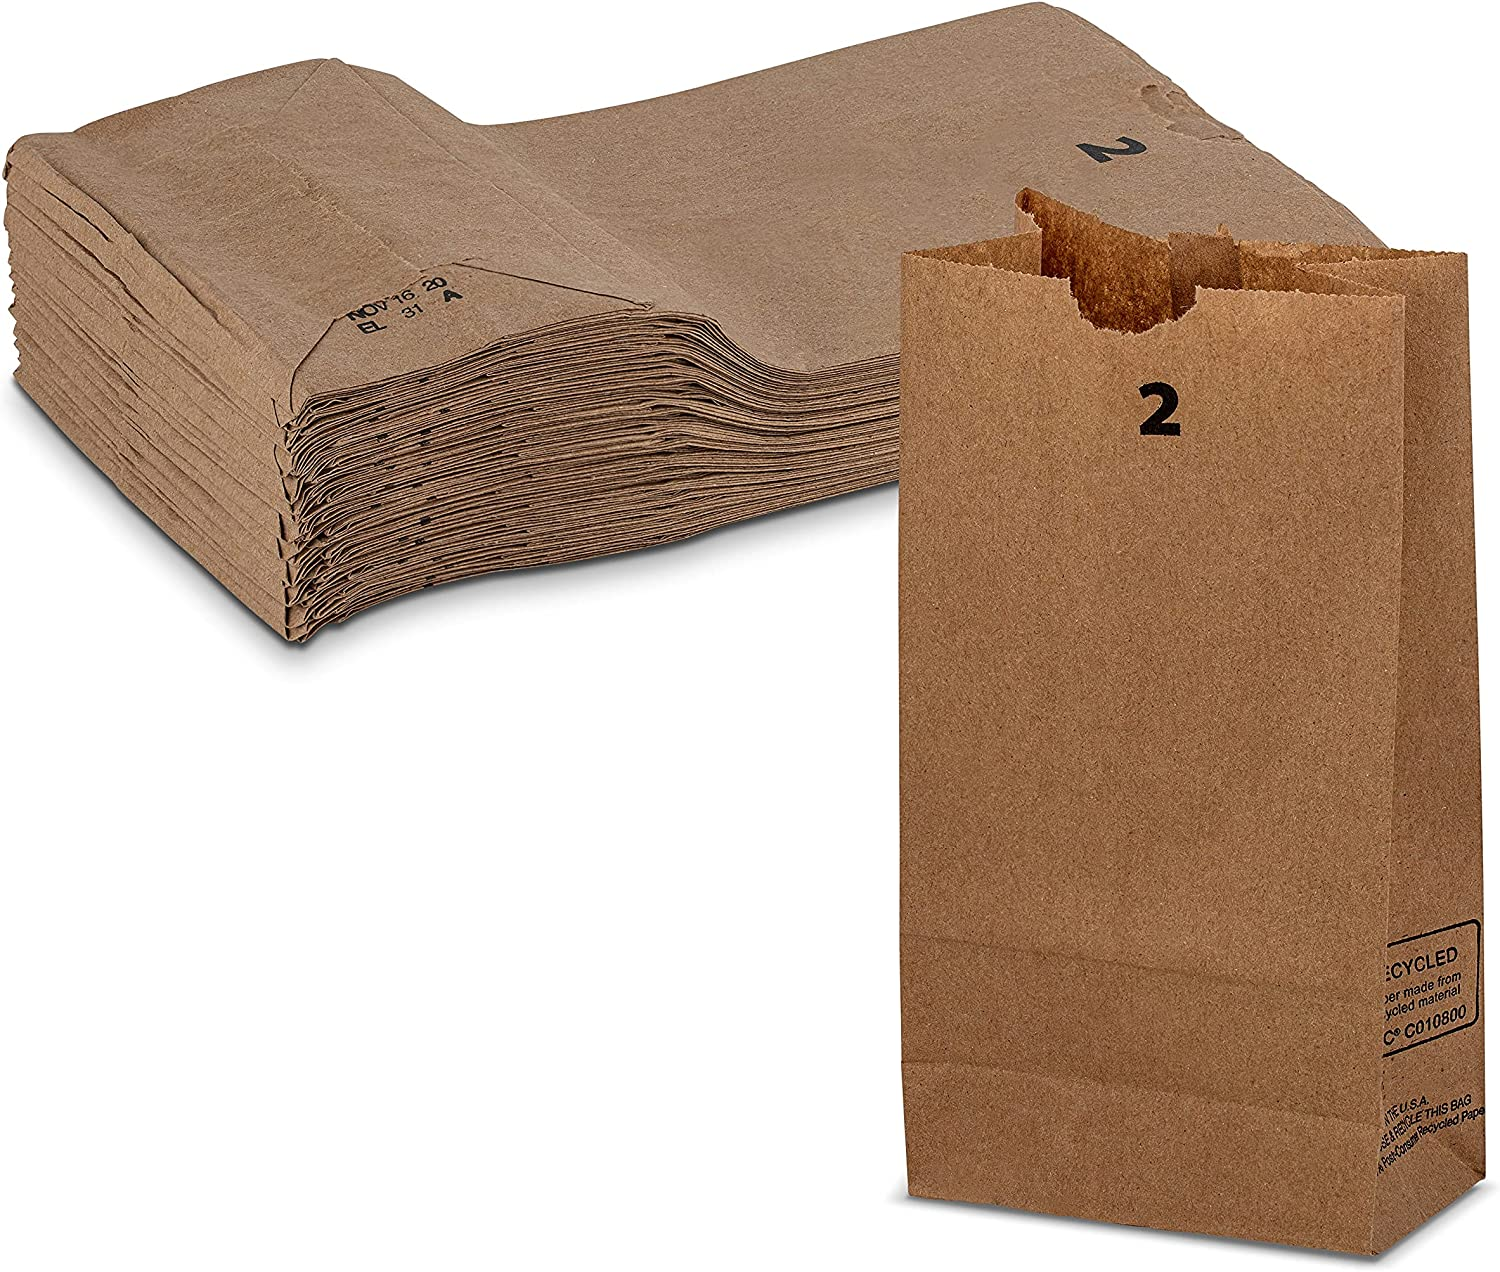 Strong Special Campaign and Durable 2 lb Capacity Paper Limited Special Price Bag Keeps Kraft Fres Food